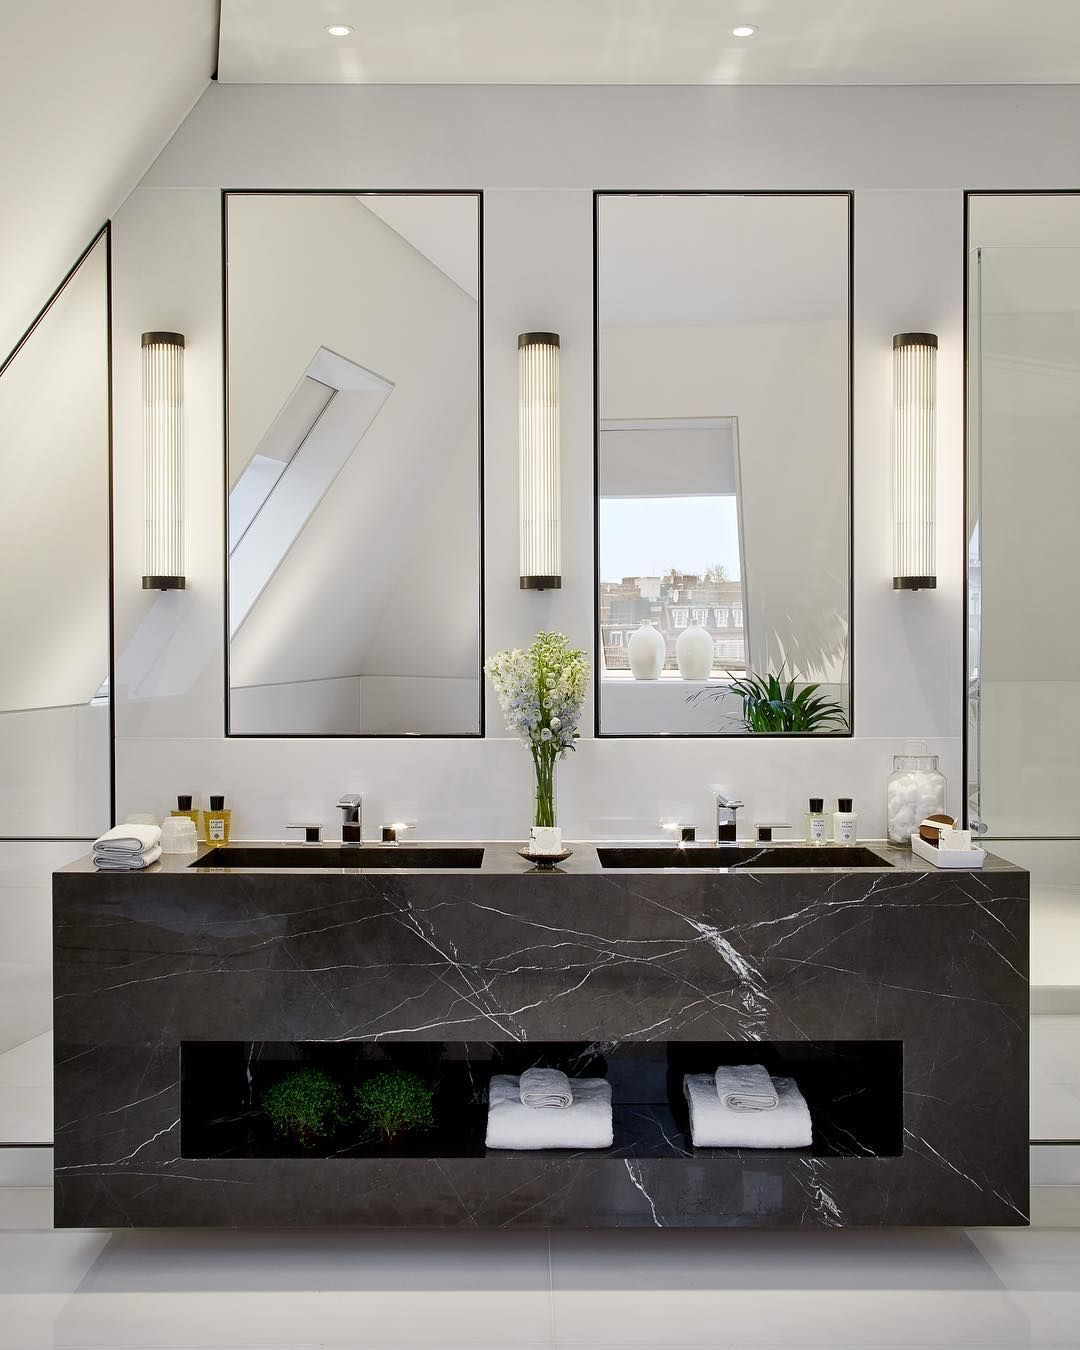 Kingwood Hans Place Sw1 2017 The Master Bathroom Double Vanity